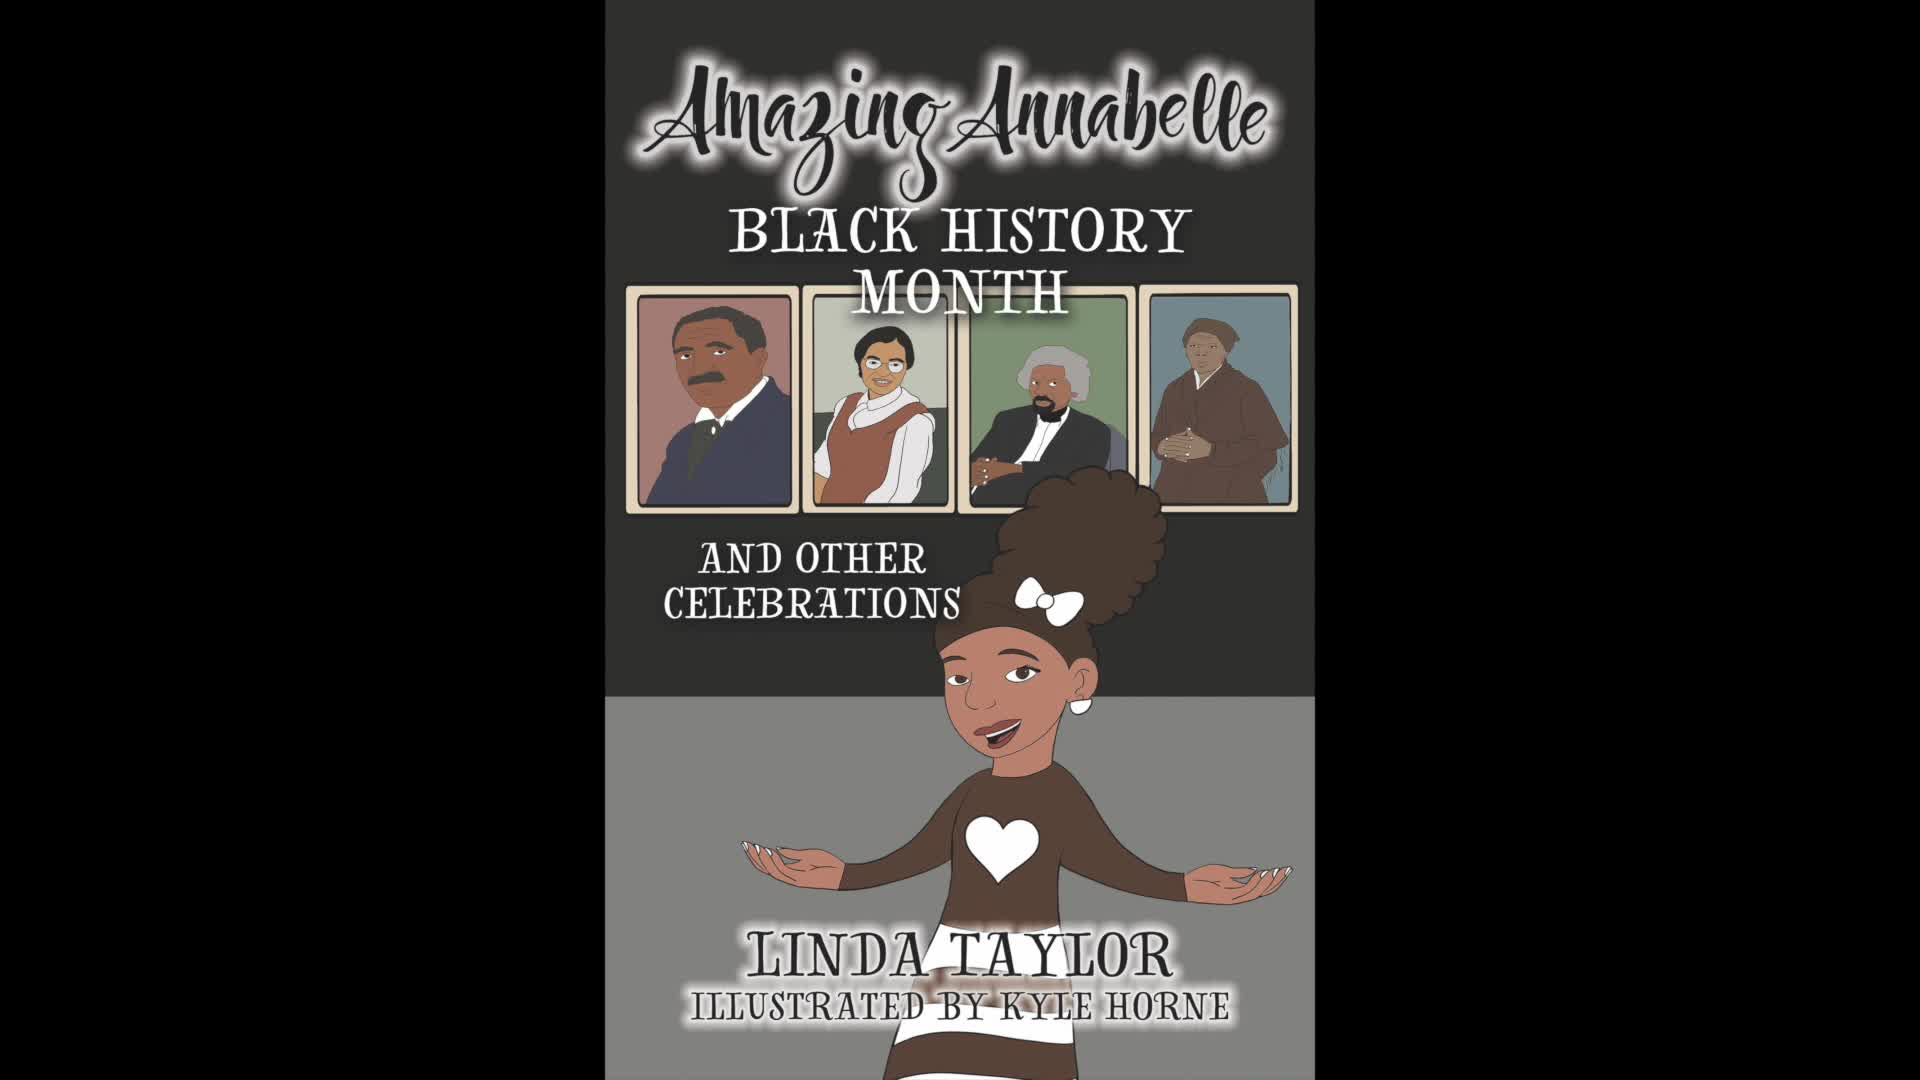 Amazing Annabelle Black History Month Chapter 11